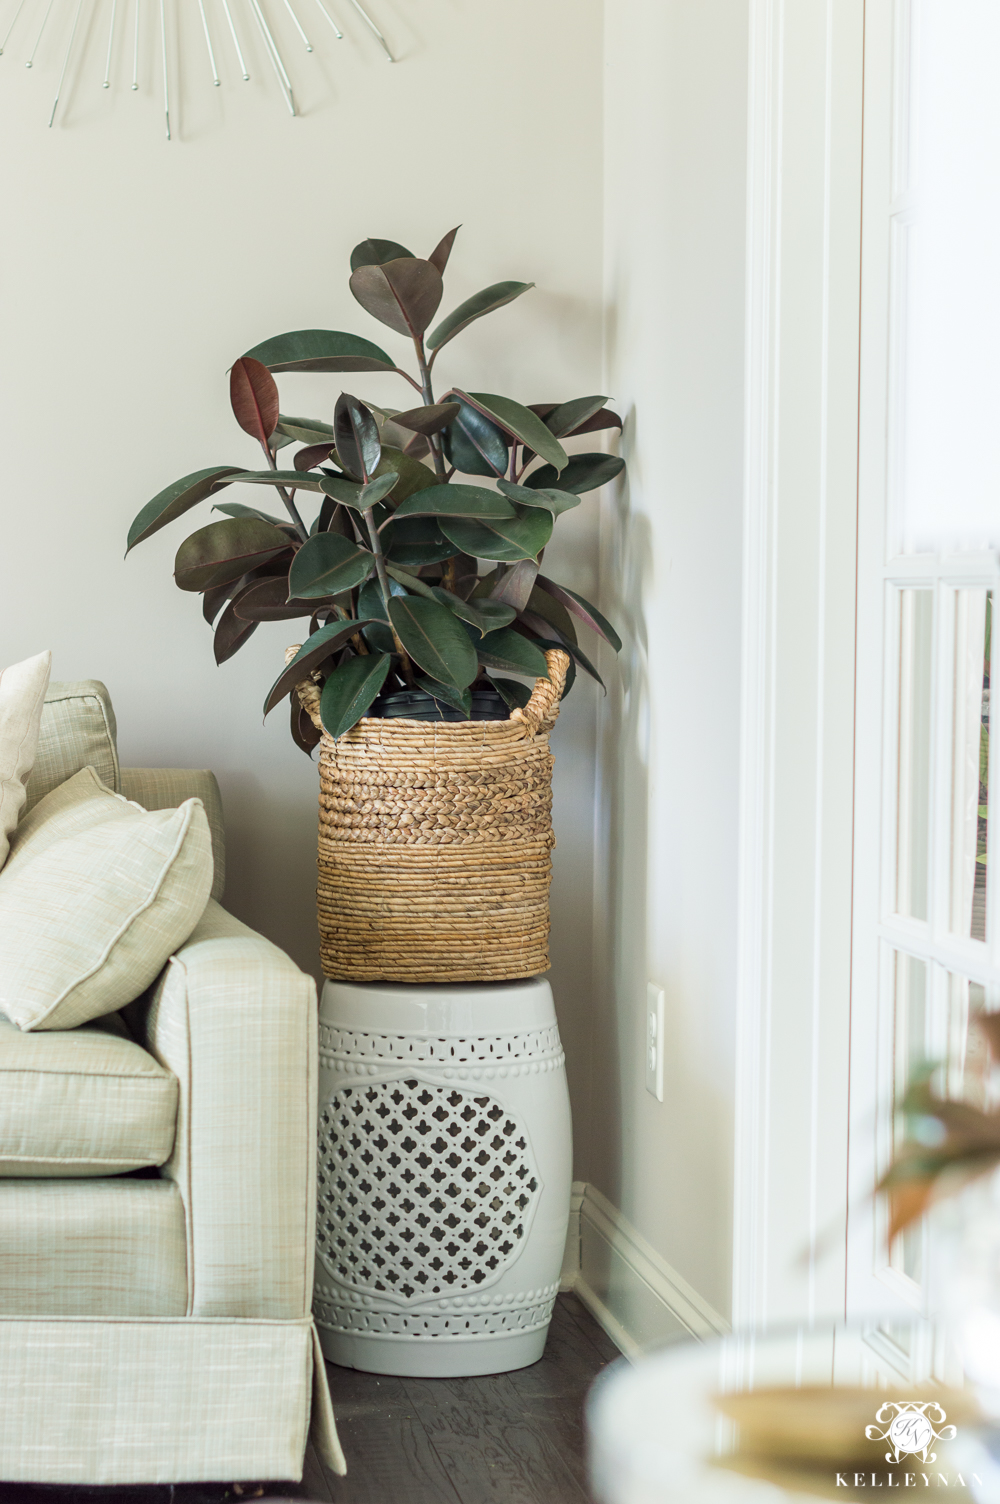 Rubber plant in basket for winter houseplant ideas